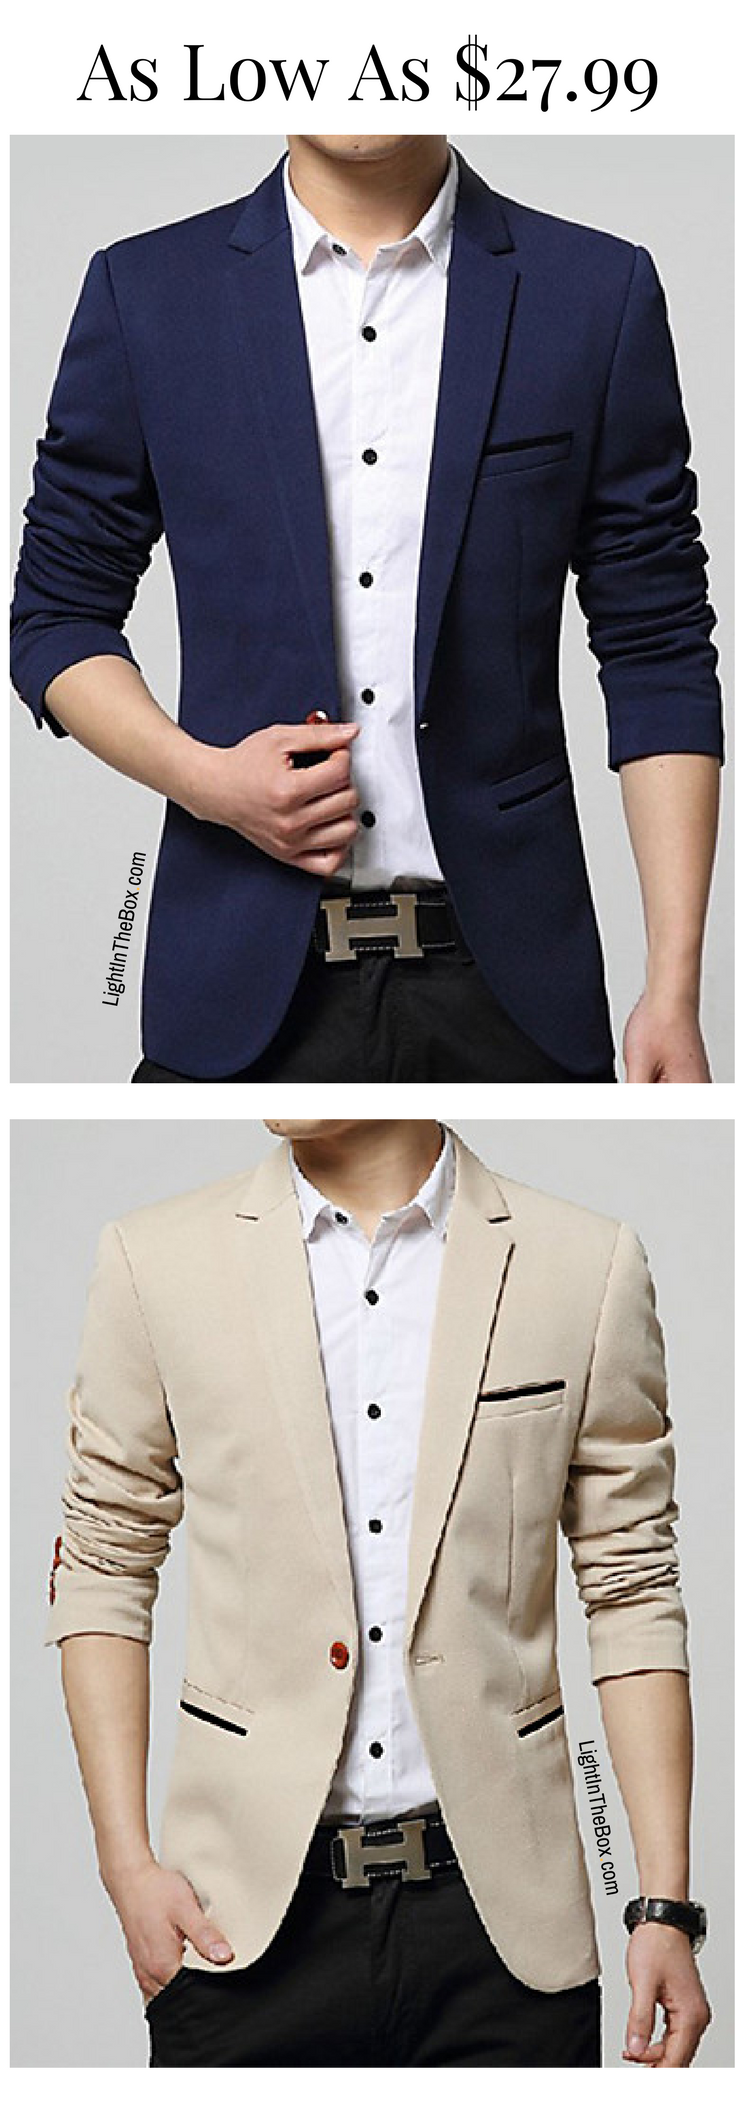 FUOE Men Slim Fit Button Jacket Coat Long Sleeve Solid Color Winter Casual Outwear with Multi-Pocket